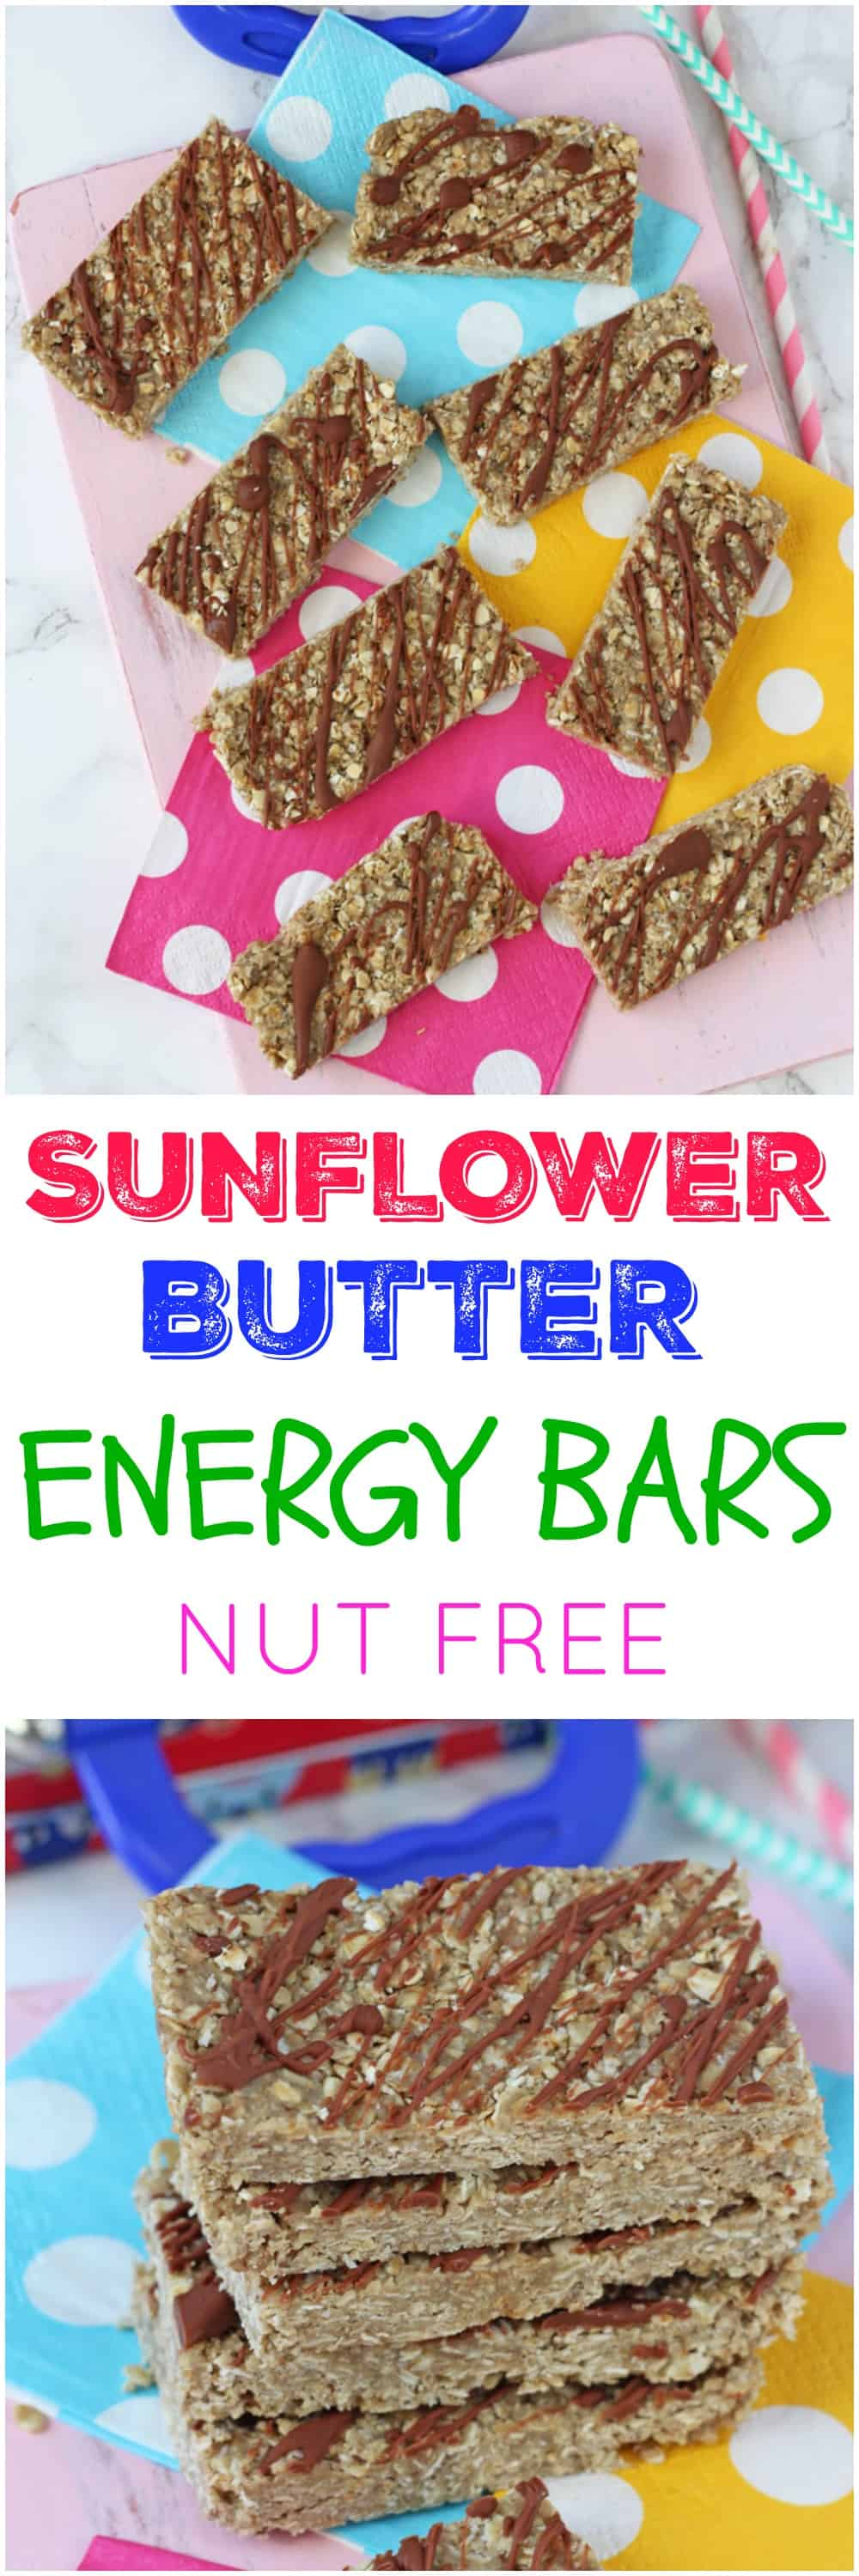 Delicious energy bars made with homemade sunflower butter, oats, flaxseed and coconut. They are the perfect nut-free snack for kids that can be popped into lunch bags or enjoyed as an after school snack!